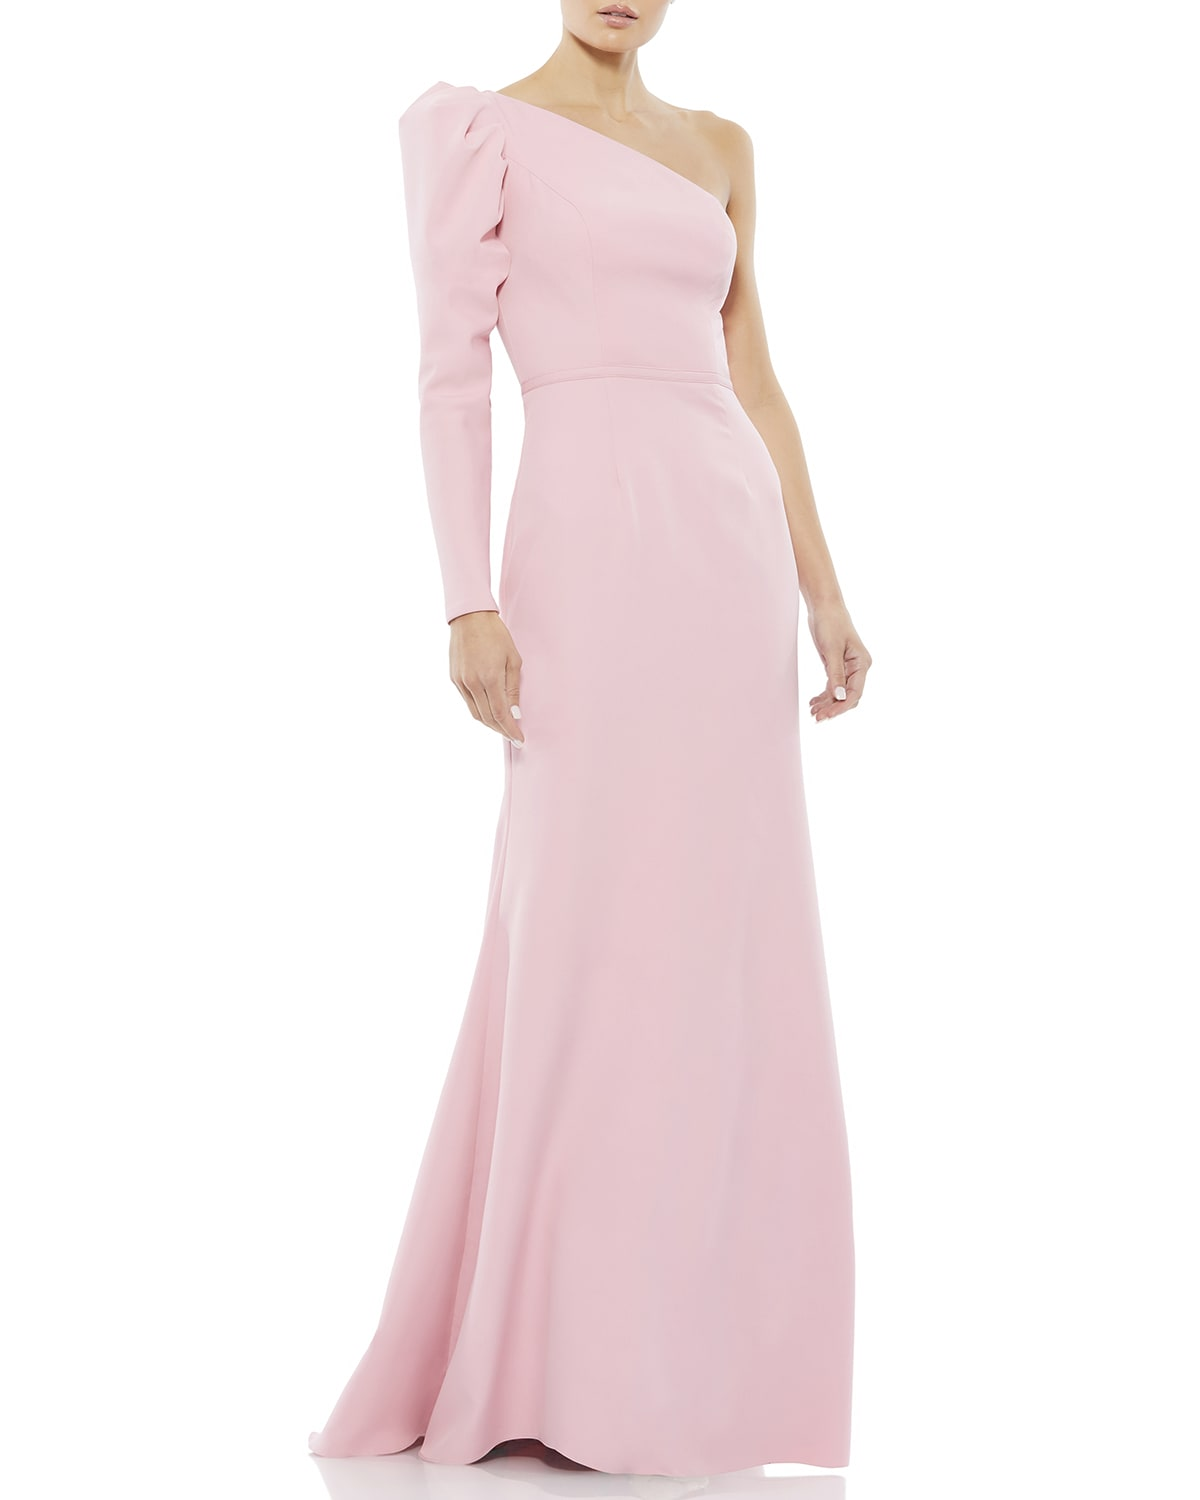 One-Shoulder Puff-Sleeve Trumpet Gown